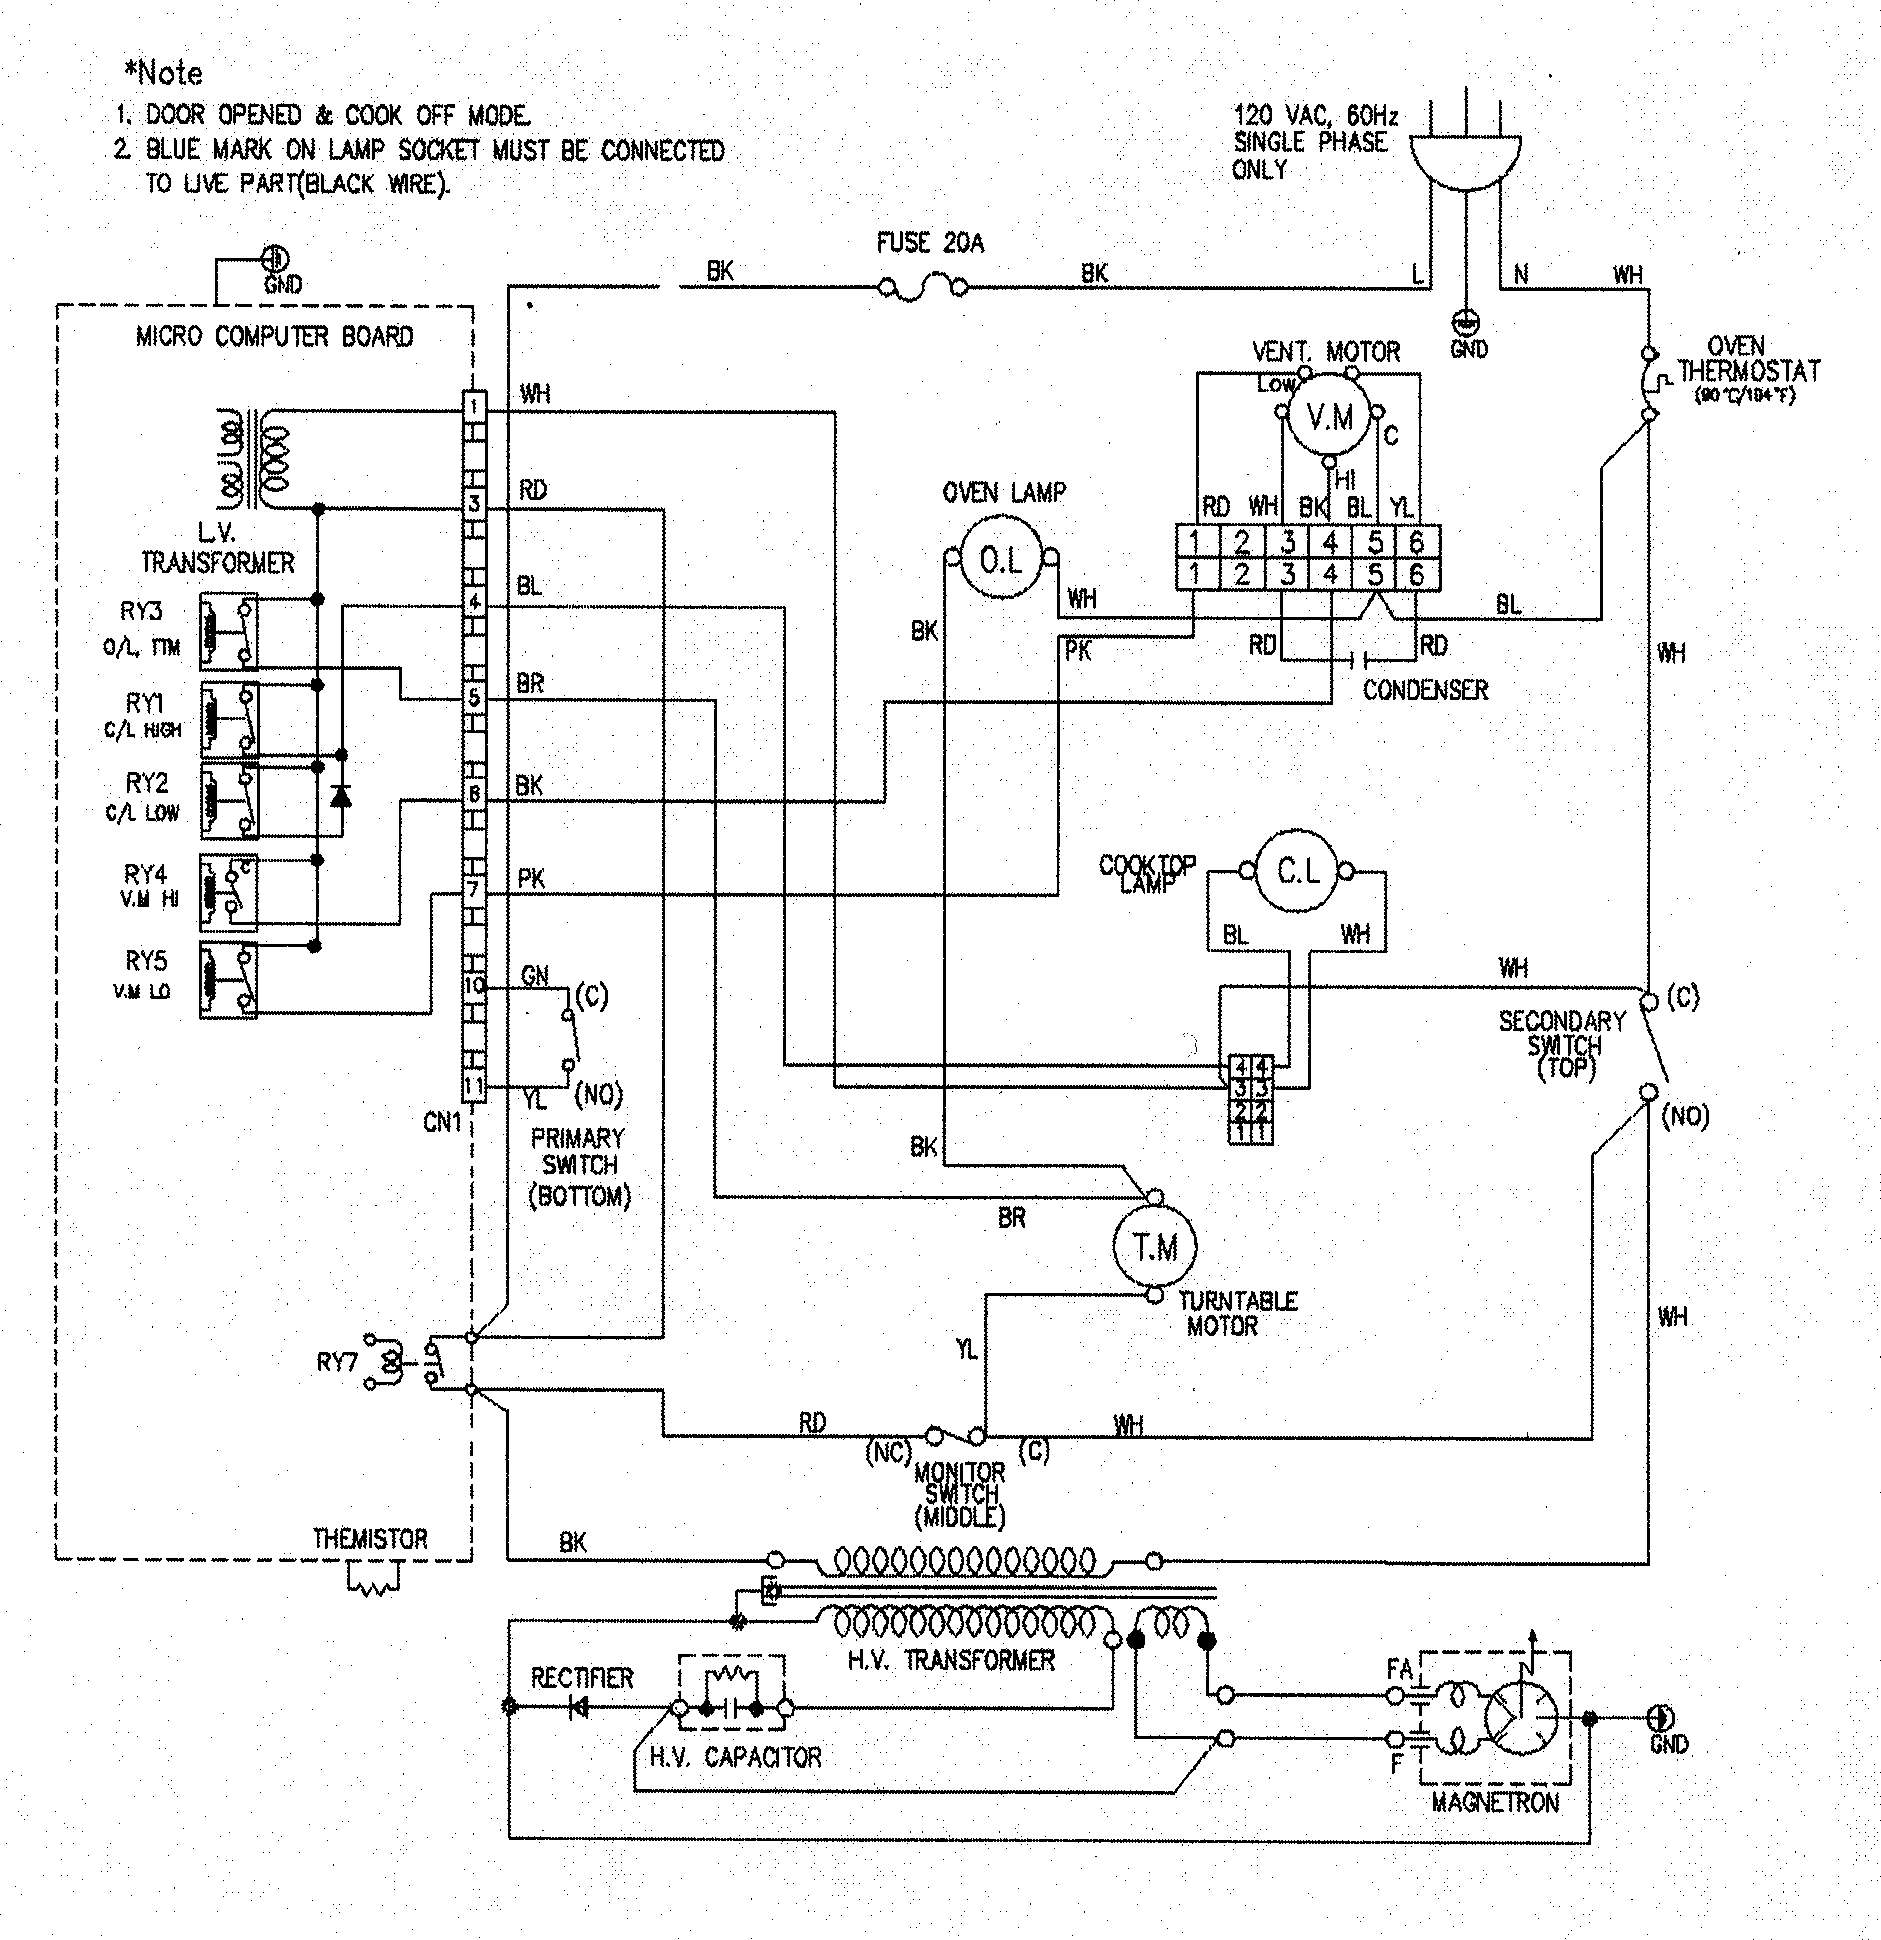 Notes on the troubleshooting and repair of microwave ovens notes on the troubleshooting and repair of microwave ovens electronics pinterest microwave oven diagram and oven cheapraybanclubmaster Image collections